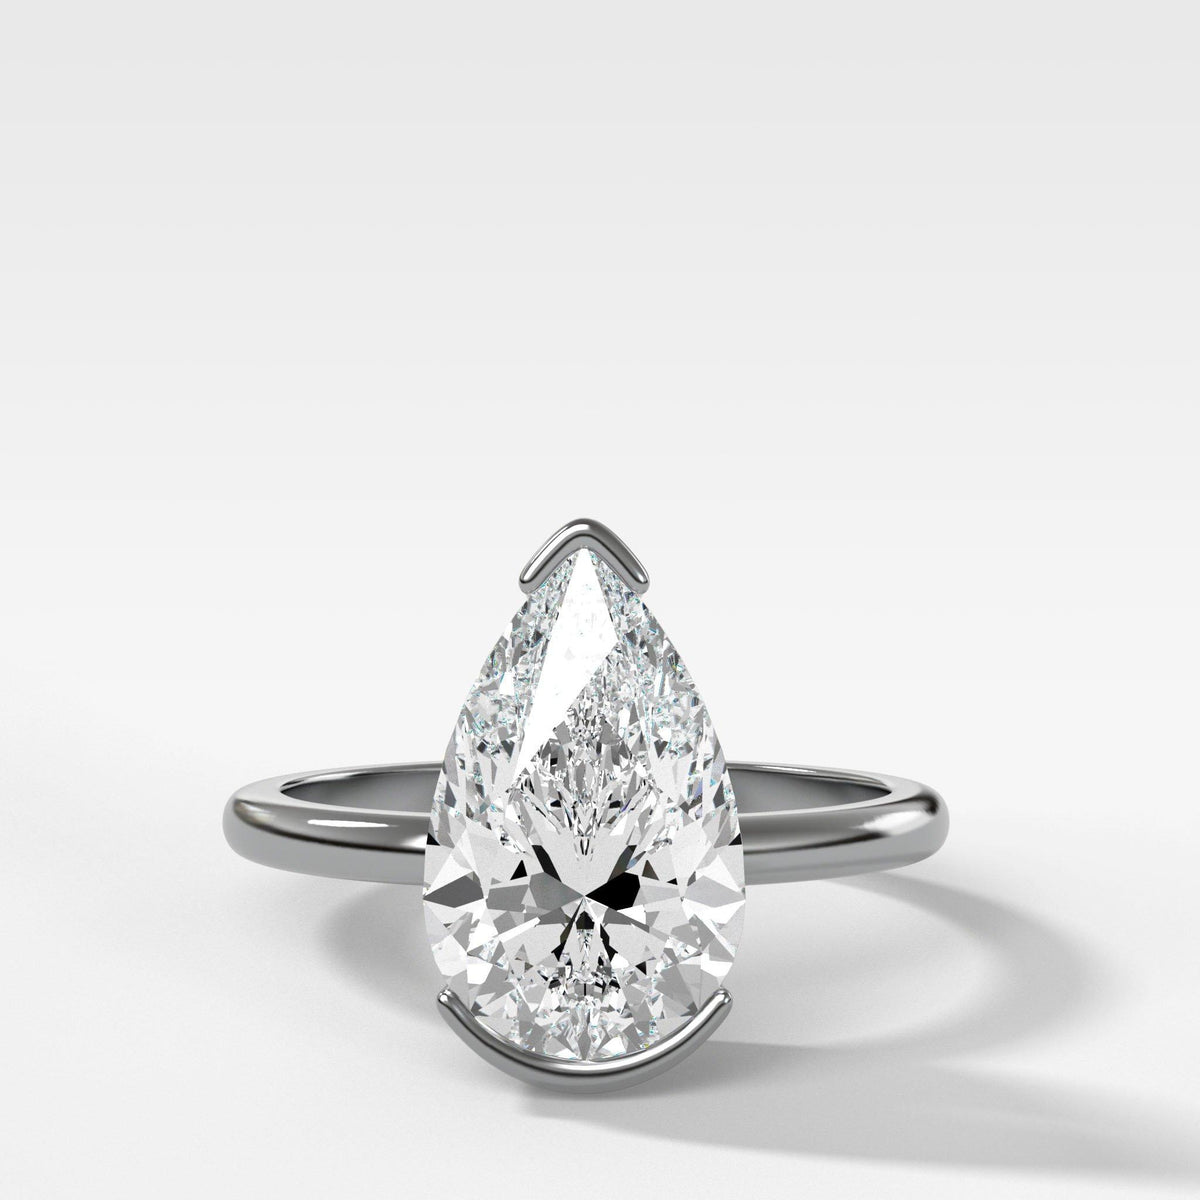 North South Half Bezel Solitaire Engagement Ring With Pear Cut in White Gold by Good Stone